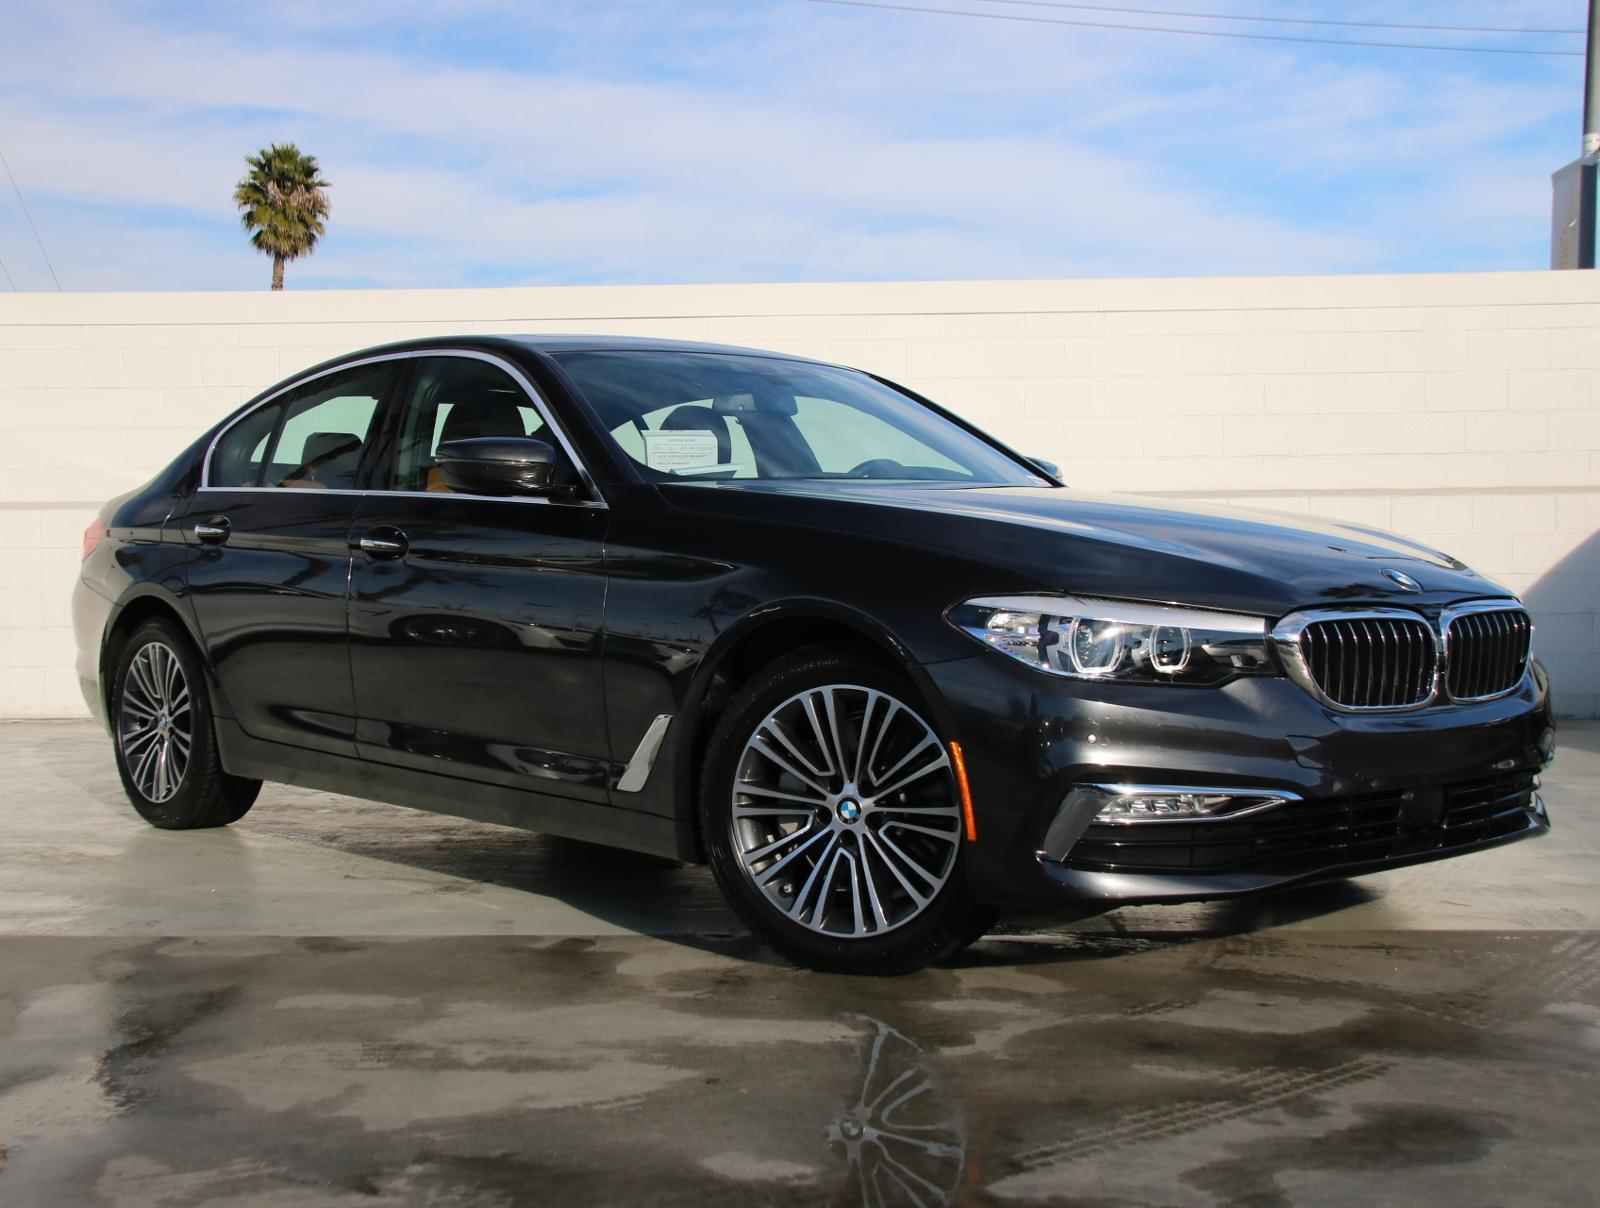 Pre-Owned 2018 BMW 5 Series 530i Rear Wheel Drive 530i Sedan